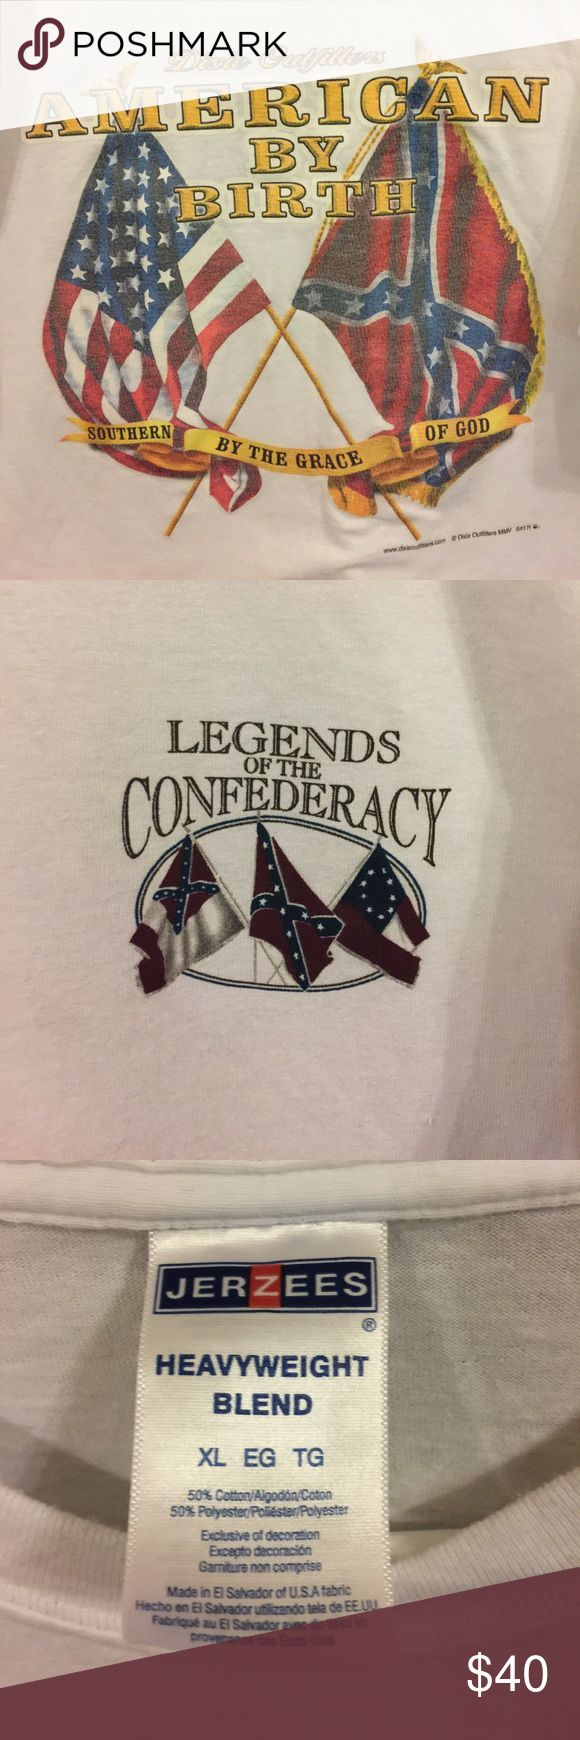 BNWOT Legends of the Confederacy T-shirt When he was deployed to Afghanistan, my husband received this as a gift from military supporters.  He has chosen never to wear it. Some say it's offensive; others say it's history.  Whatever your opinion, THE PRICE IS FIRM, as some people are collectors of all things Confederate.  It is offered now for the sake of historicity.  If you find it offensive, please scroll on by, as I mean you no harm.  On the other hand, if this calls to you for whatever…